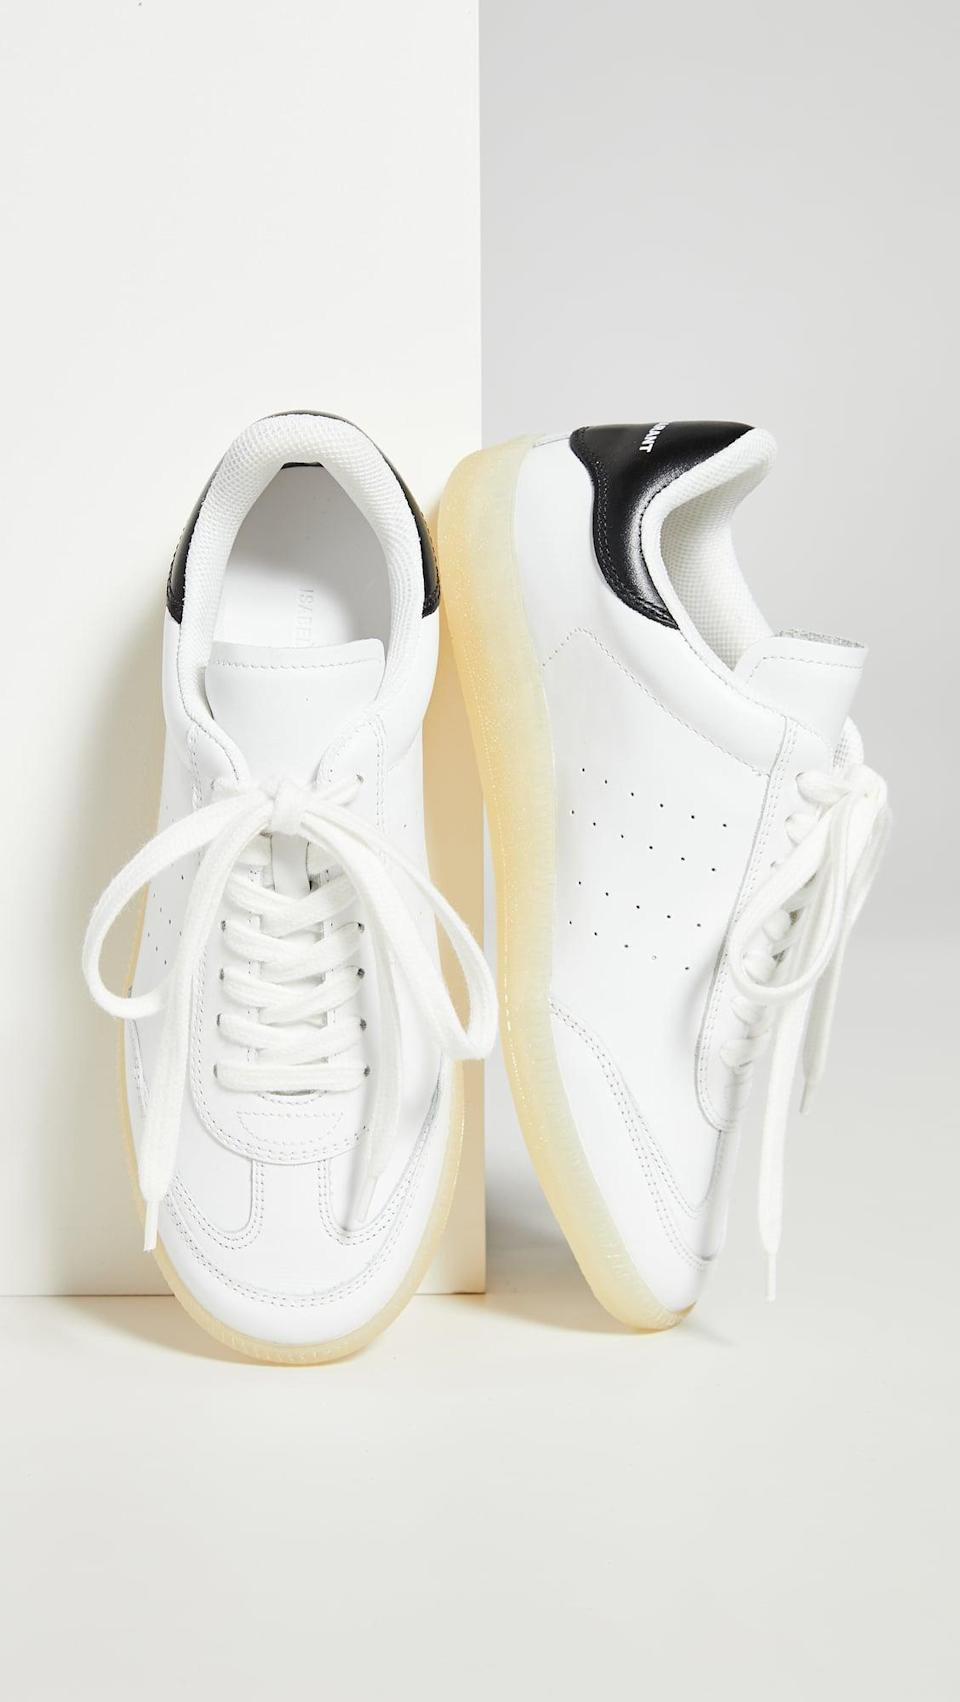 "<p><a href=""https://www.popsugar.com/buy/Isabel-Marant-Bryvee-Sneakers-563800?p_name=Isabel%20Marant%20Bryvee%20Sneakers&retailer=shopbop.com&pid=563800&price=460&evar1=fab%3Aus&evar9=44311634&evar98=https%3A%2F%2Fwww.popsugar.com%2Ffashion%2Fphoto-gallery%2F44311634%2Fimage%2F46921957%2FIsabel-Marant-Bryvee-Sneakers&list1=shopping%2Cshoes%2Csneakers%2Choliday%2Cgift%20guide%2Ceditors%20pick%2Cfashion%20gifts%2Cgifts%20for%20women&prop13=api&pdata=1"" class=""link rapid-noclick-resp"" rel=""nofollow noopener"" target=""_blank"" data-ylk=""slk:Isabel Marant Bryvee Sneakers"">Isabel Marant Bryvee Sneakers</a> ($460)</p> <p>""I'm always looking for a basic sneaker that doesn't feel basic. Read: it goes with everything (dresses, jumpsuits, skirts) but has some personality. This season, I'm all about Isabel Marant's sporty-cum-chic take on the everyday shoe."" - Hannah Weil McKinley, director, Fashion and Shop</p>"